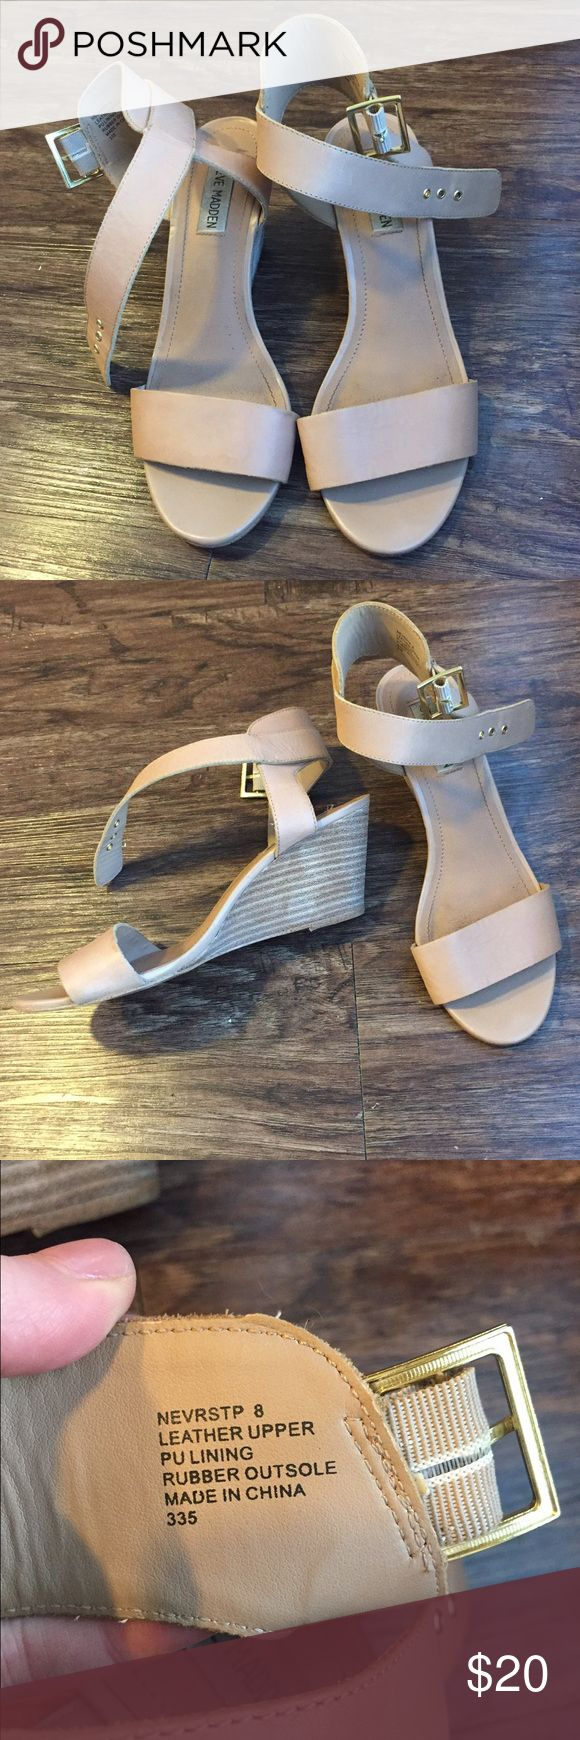 Steve Madden Wedges 💅🏼 Small wedge, very modest - Adjustable ankle straps - Used, small signs of wear as seen in photos - Only worn once for a wedding Steve Madden Shoes Wedges